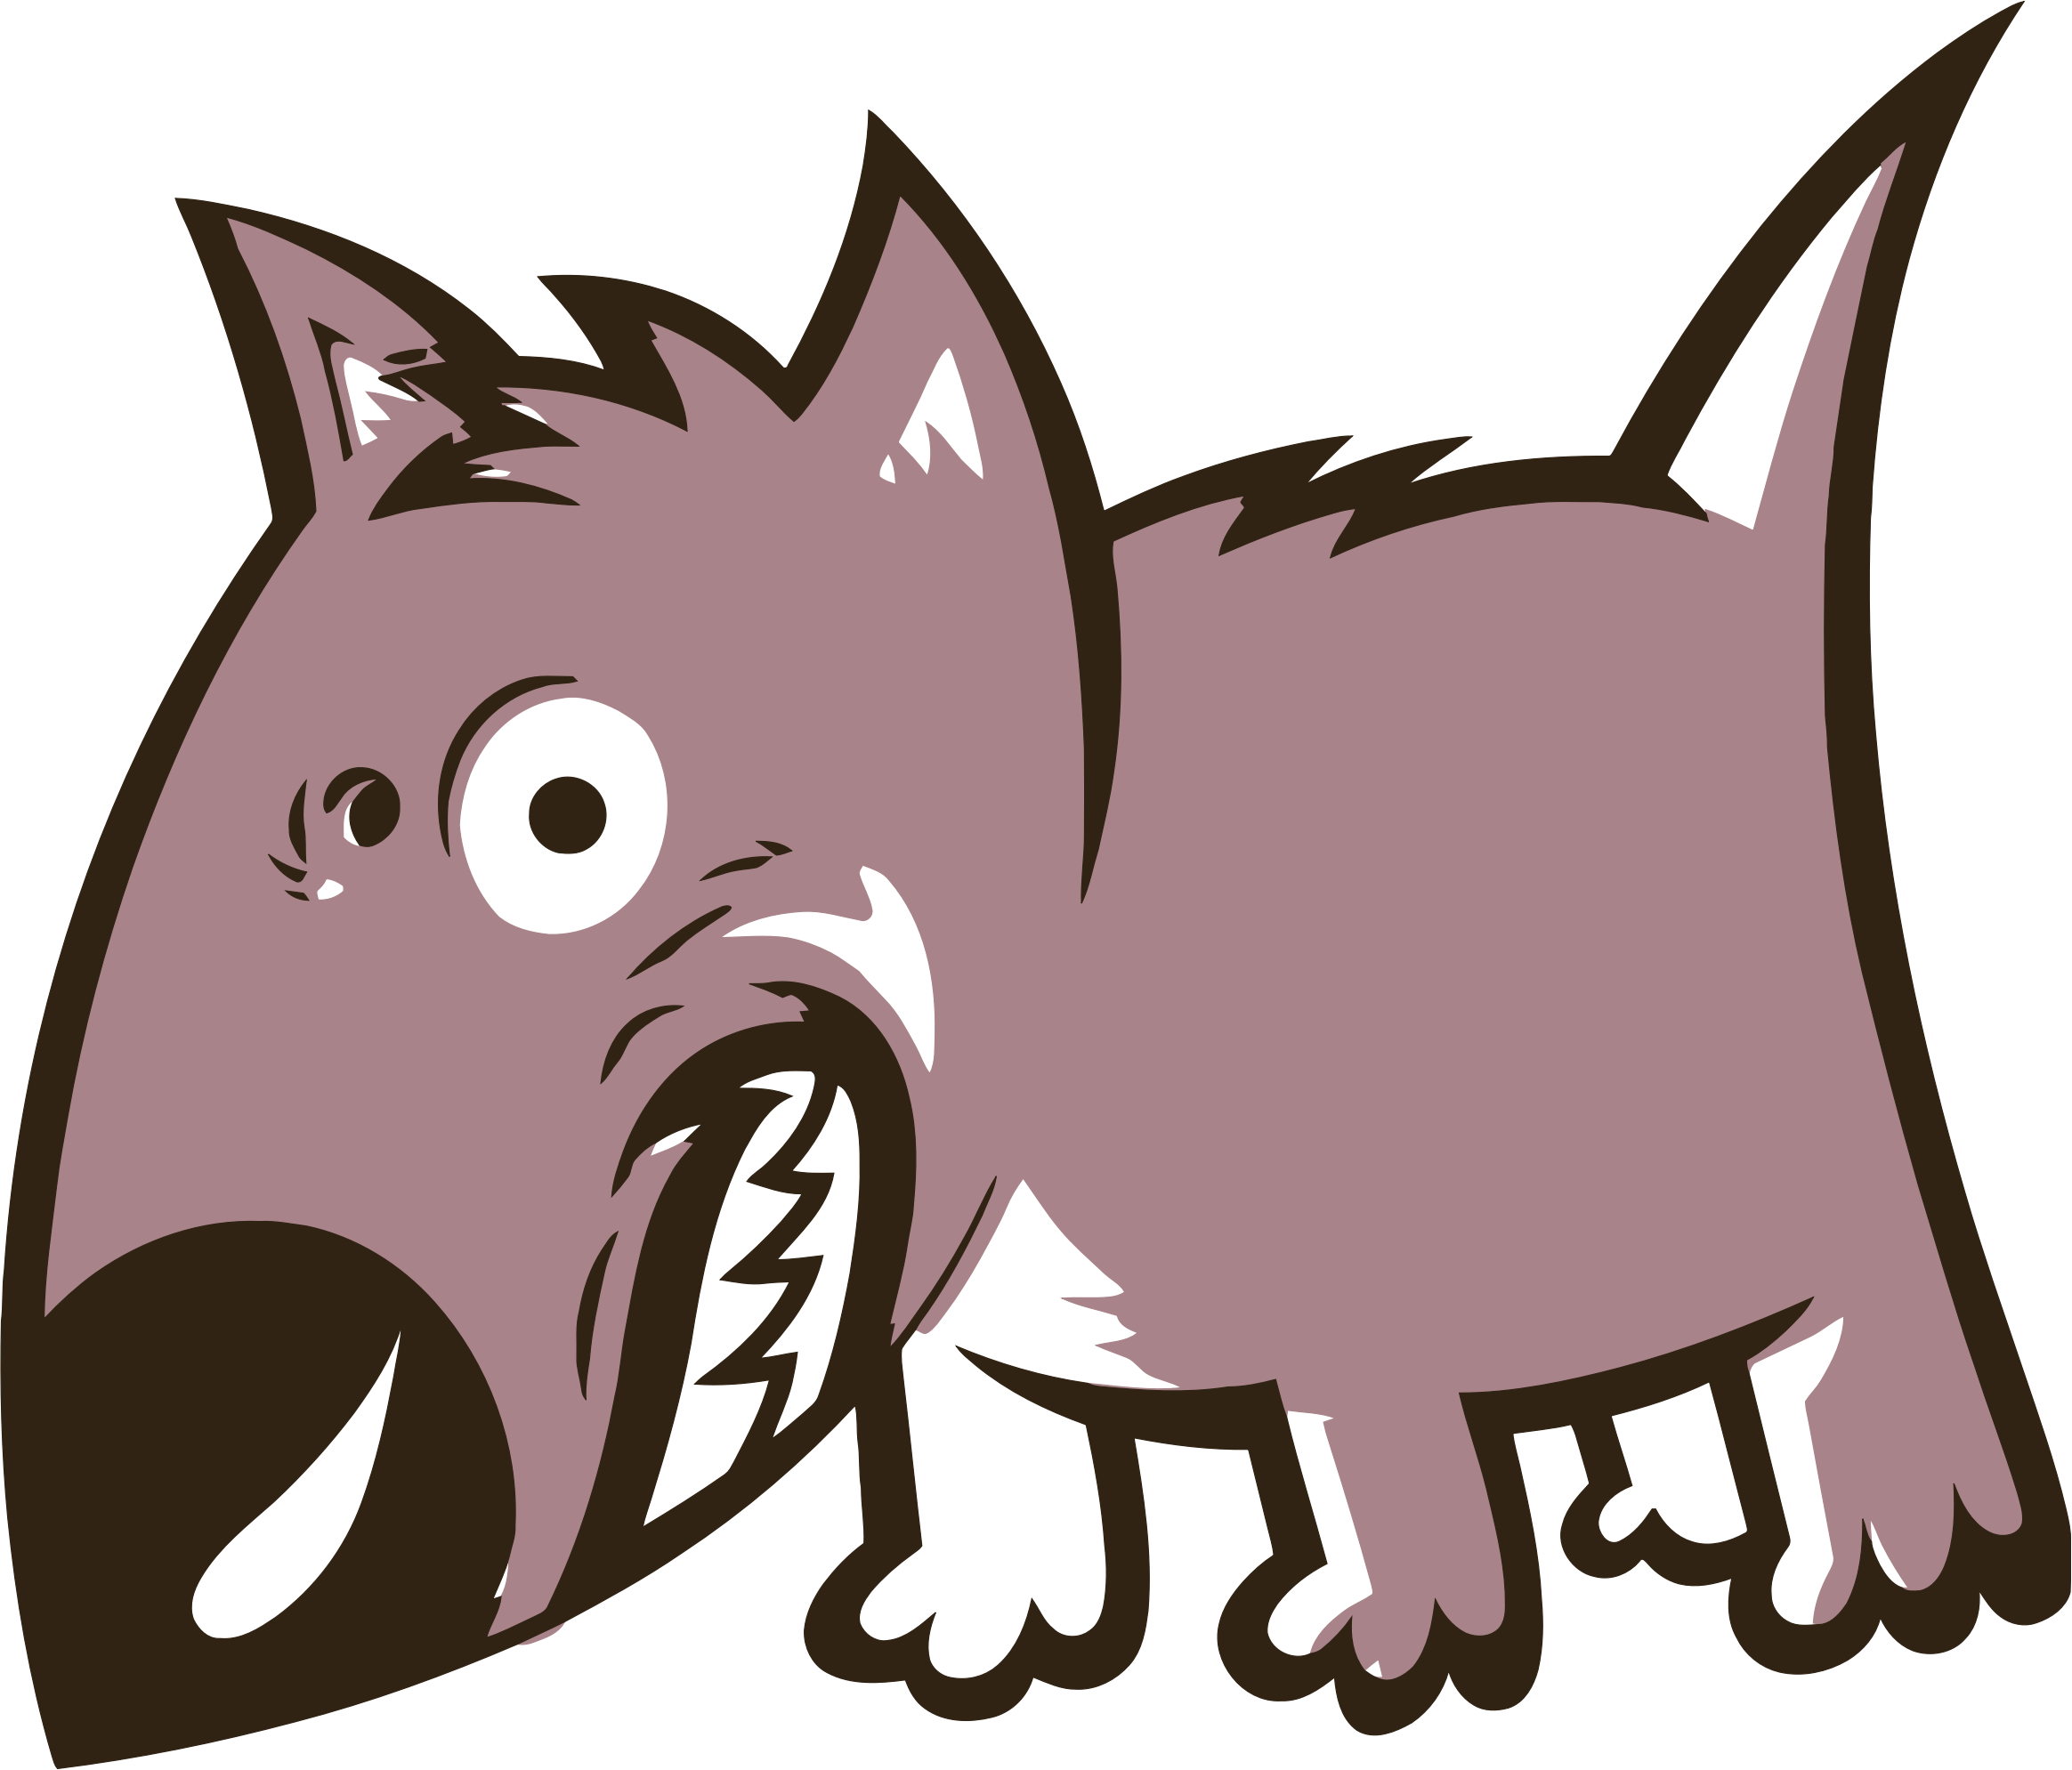 angry dog clip art - photo #29